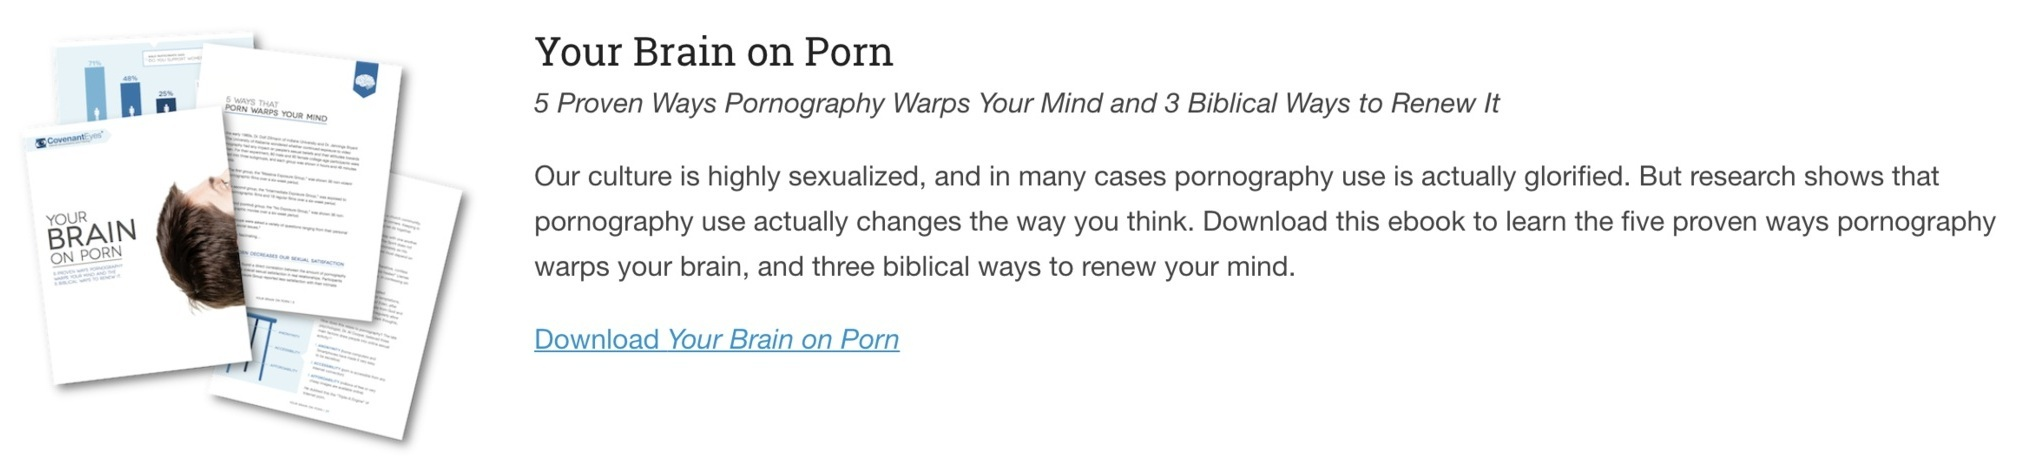 your brain on porn, free ebook